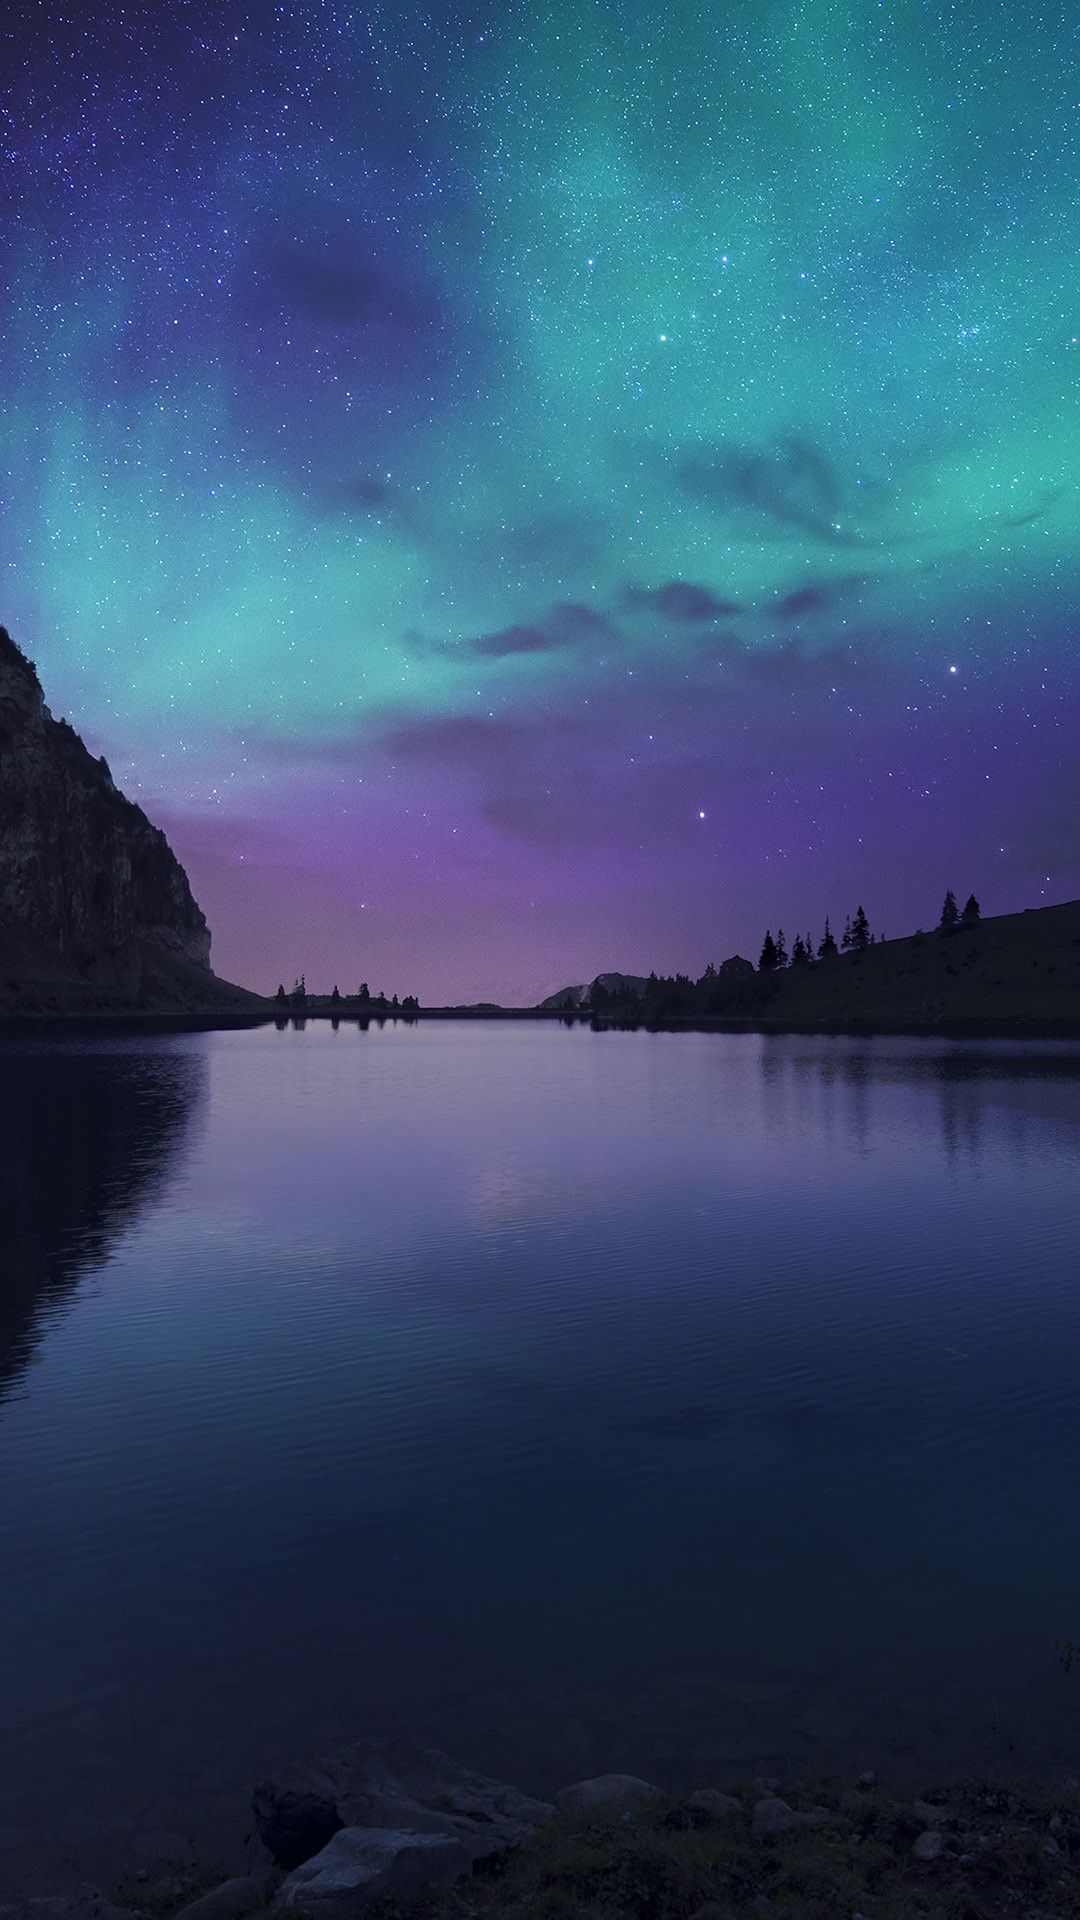 Calming Backgrounds Posted By Ethan Johnson